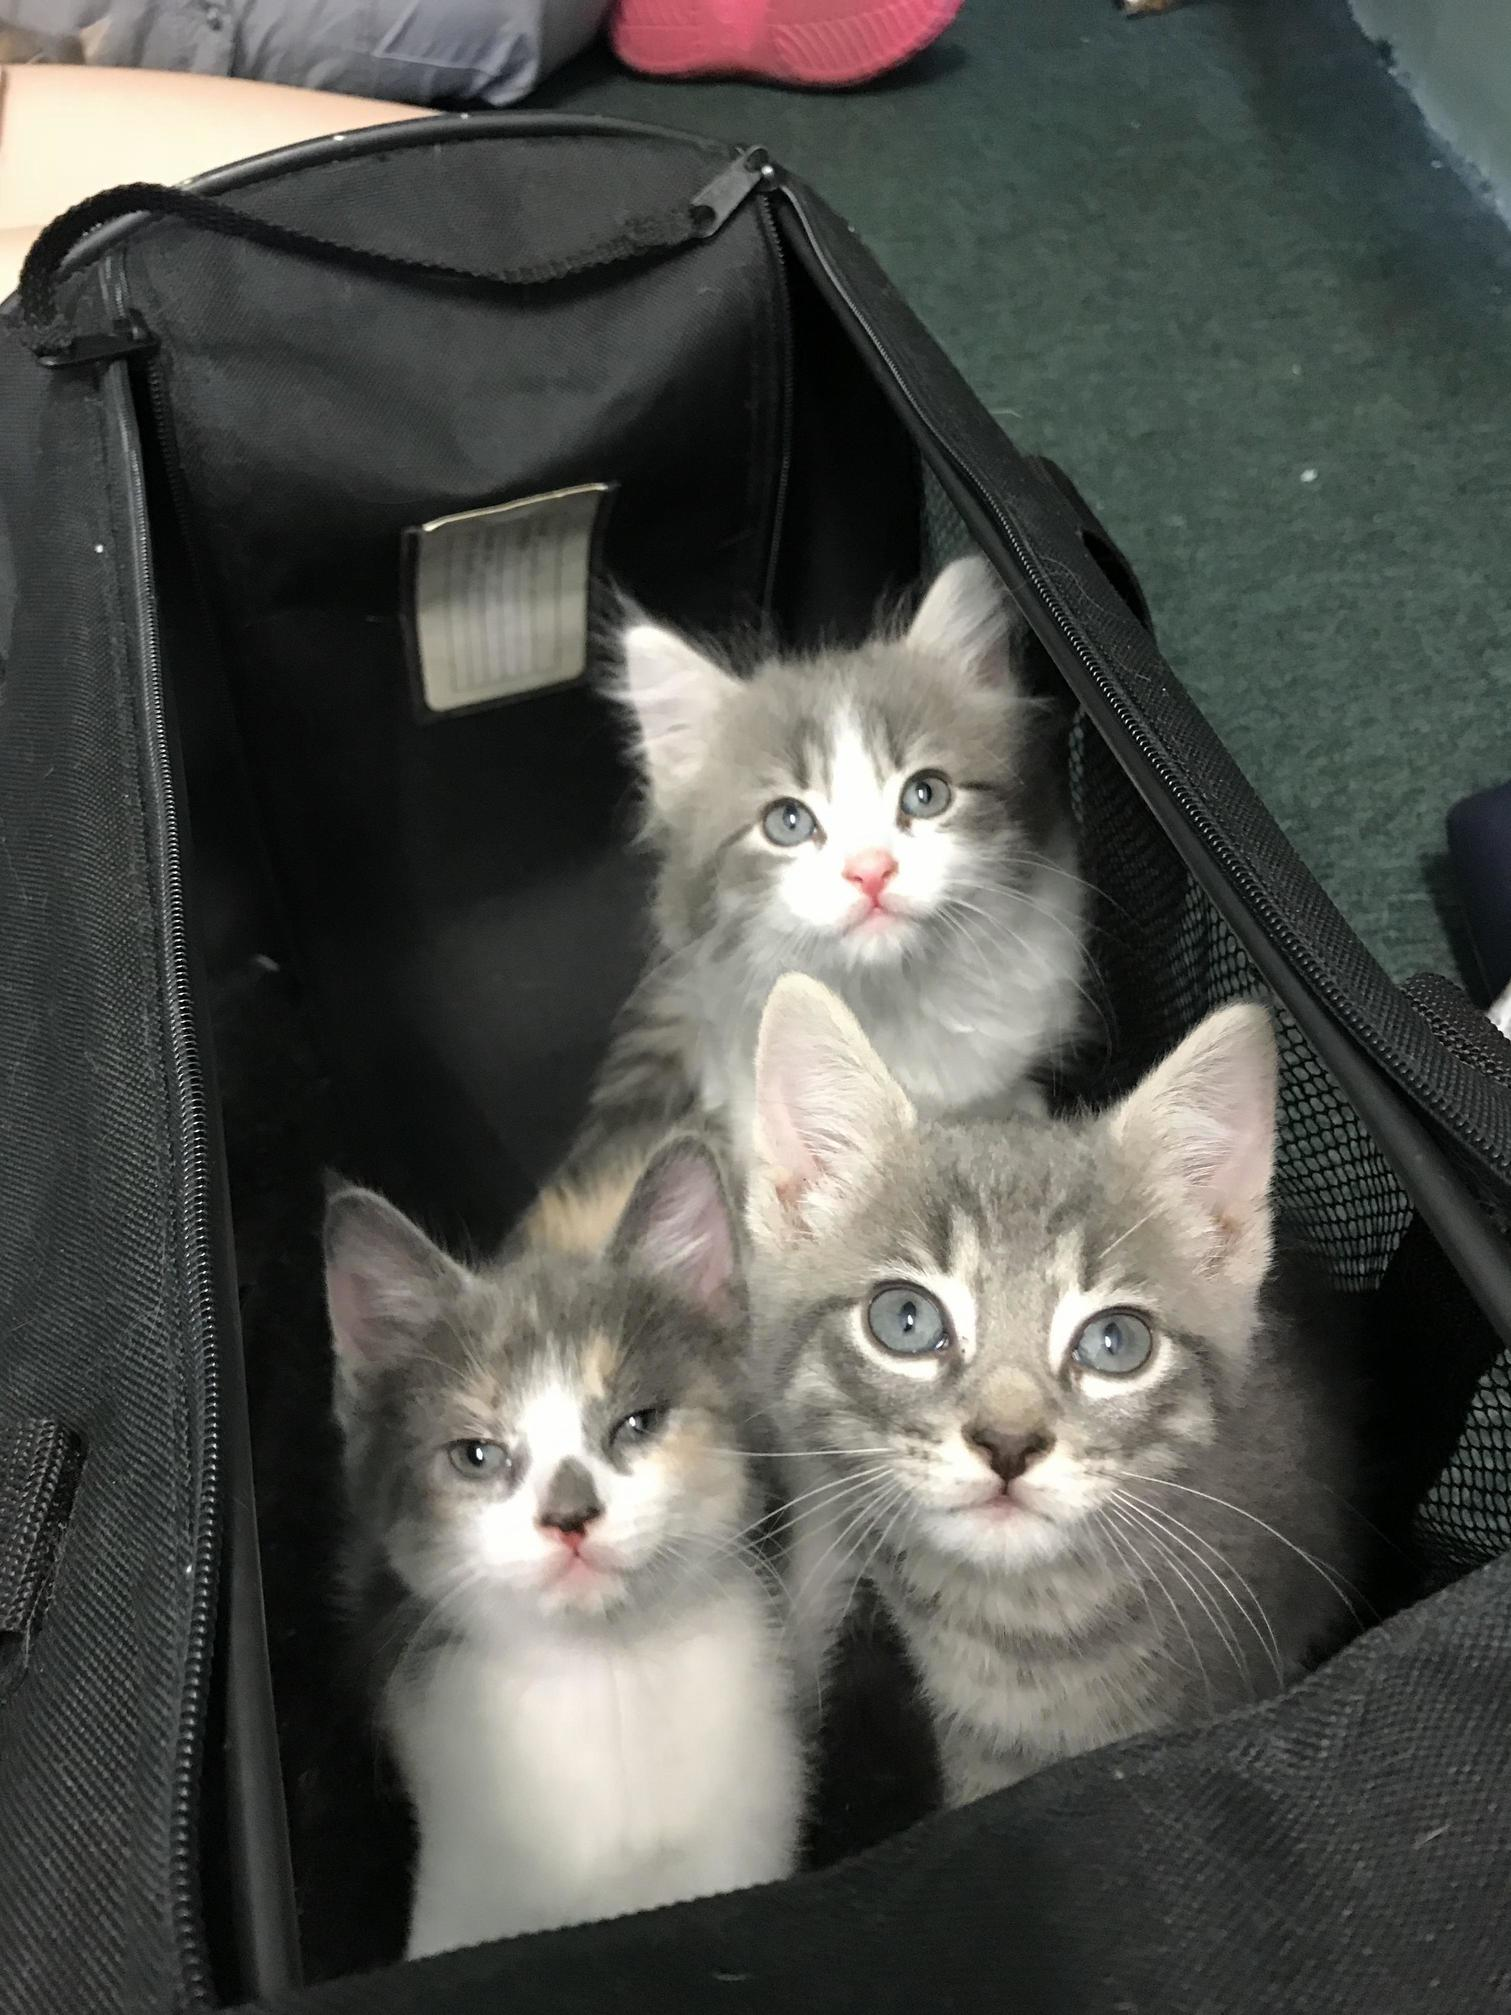 My friend is fostering some precious kittens